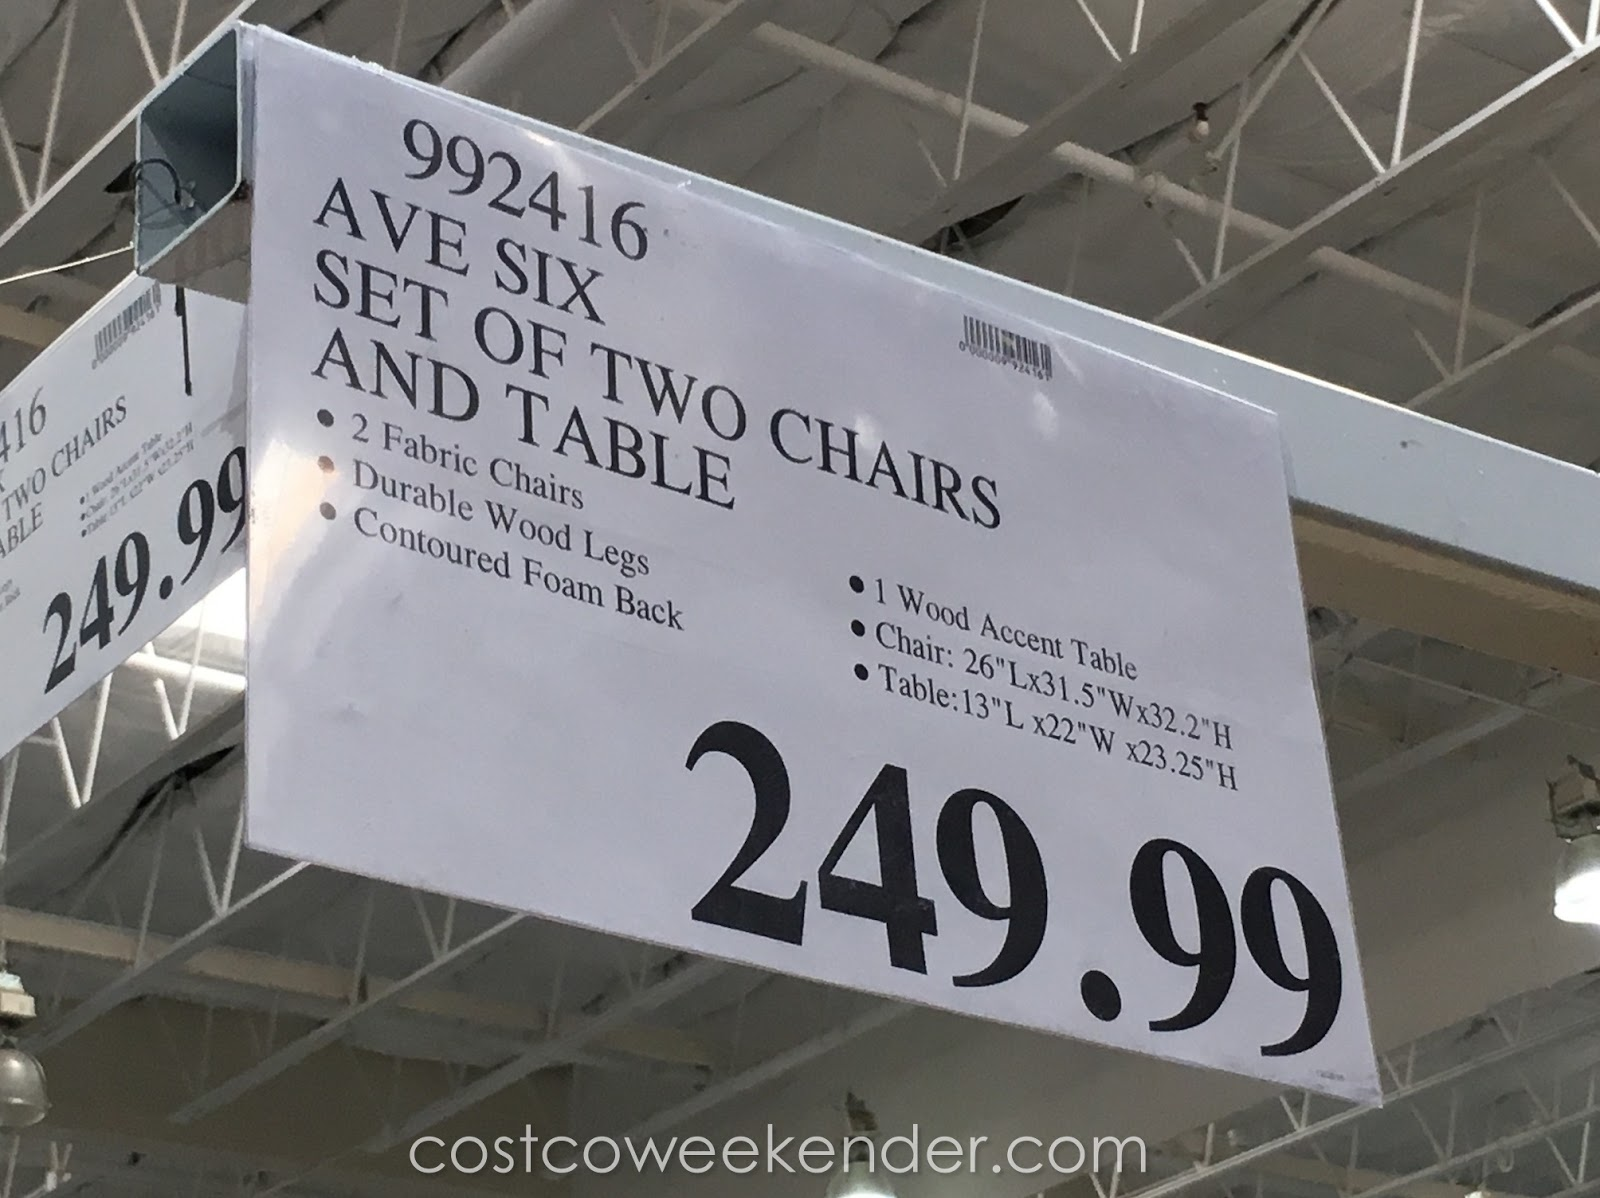 Deal for the Avenue Six 3 Piece Chair and Accent Table Set at Costco